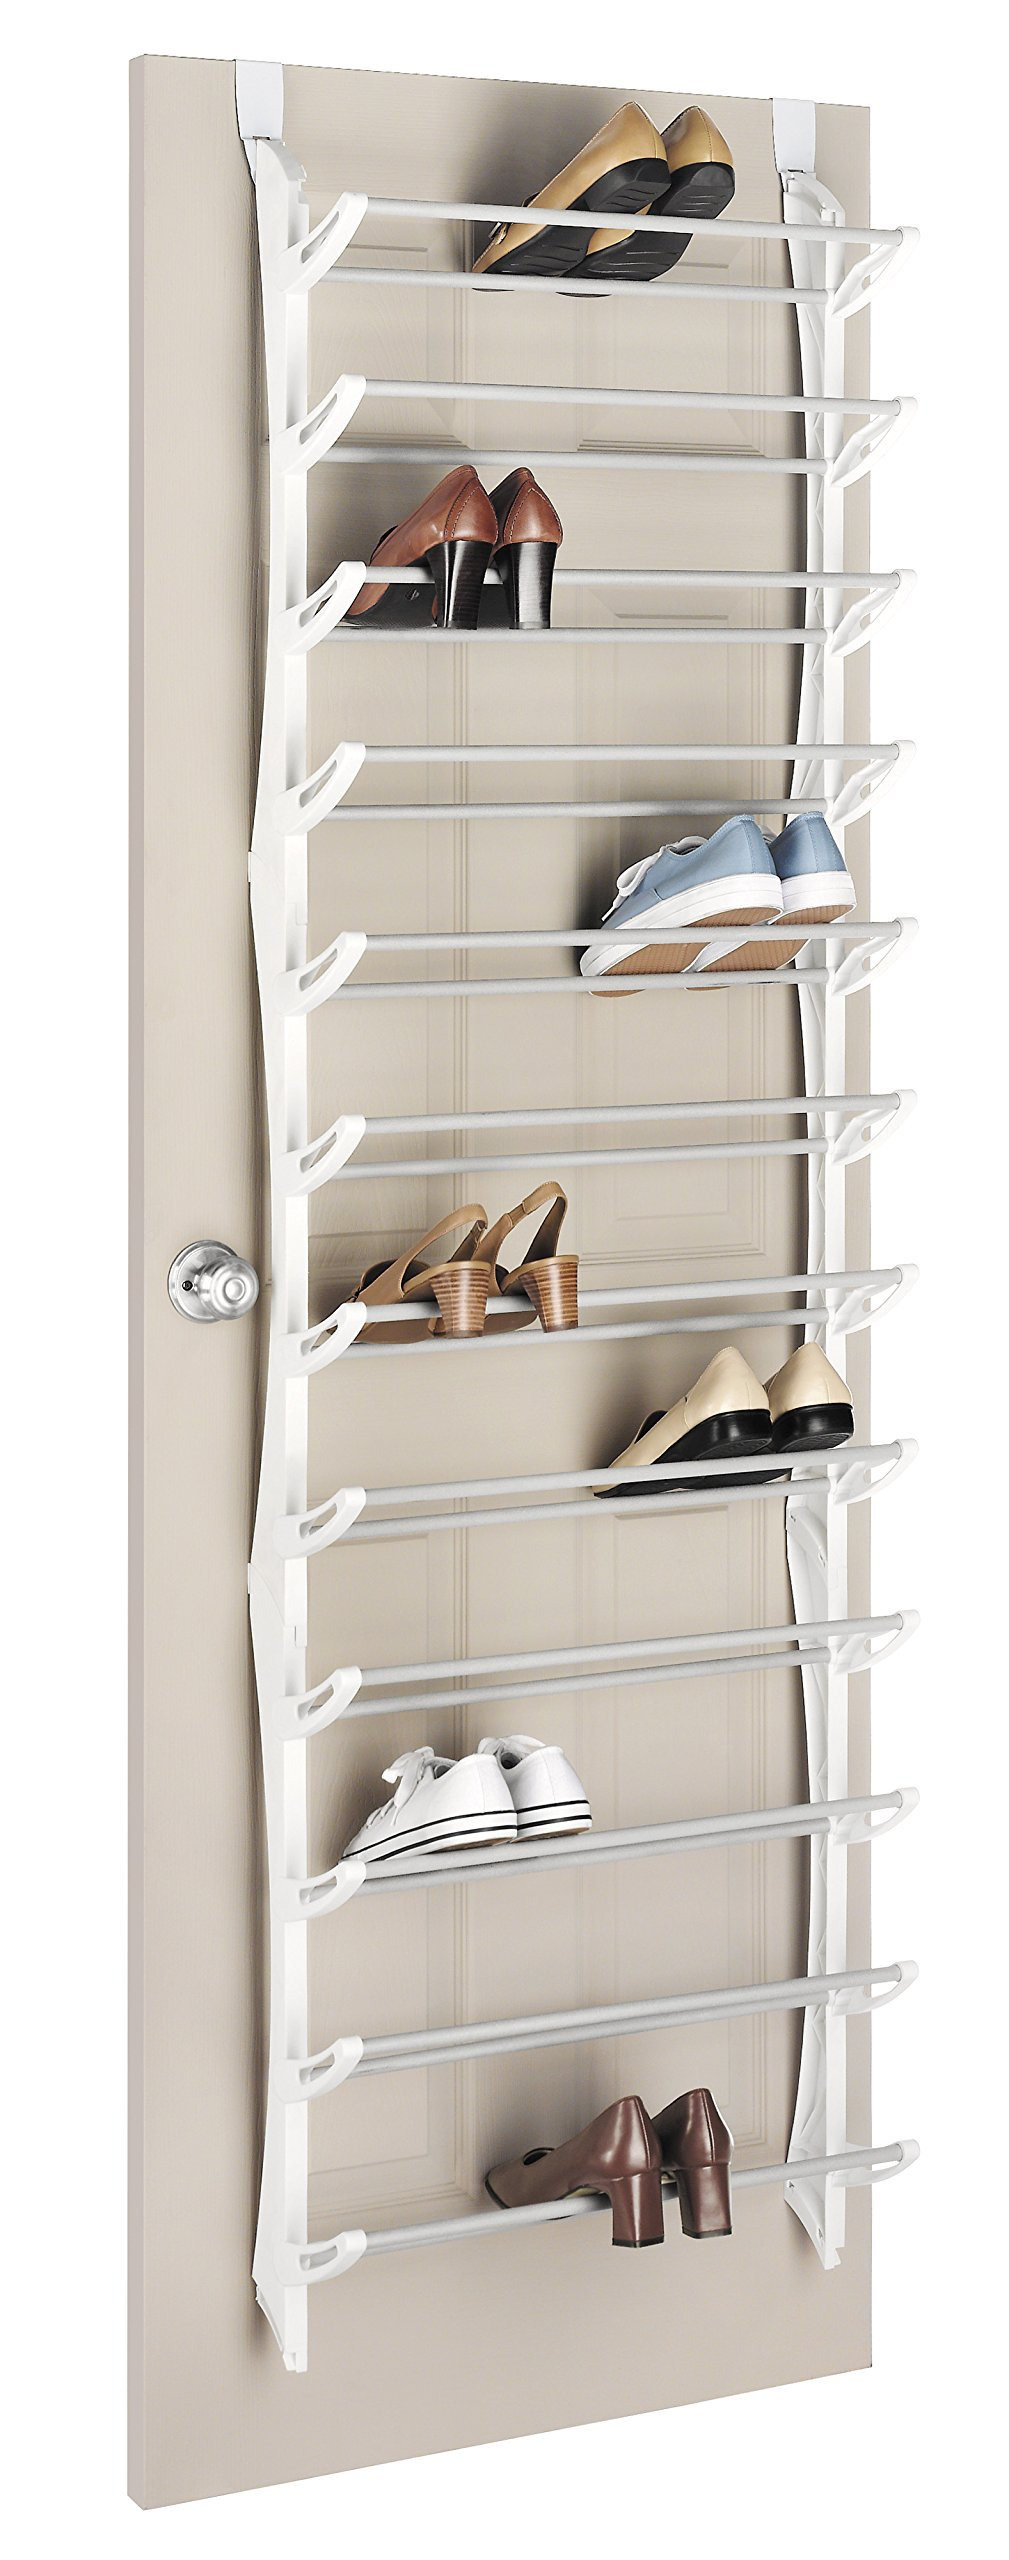 Whitmor Over the Door Shoe Rack - 36 Pair - Fold Up, Nonslip Bars by Whitmor